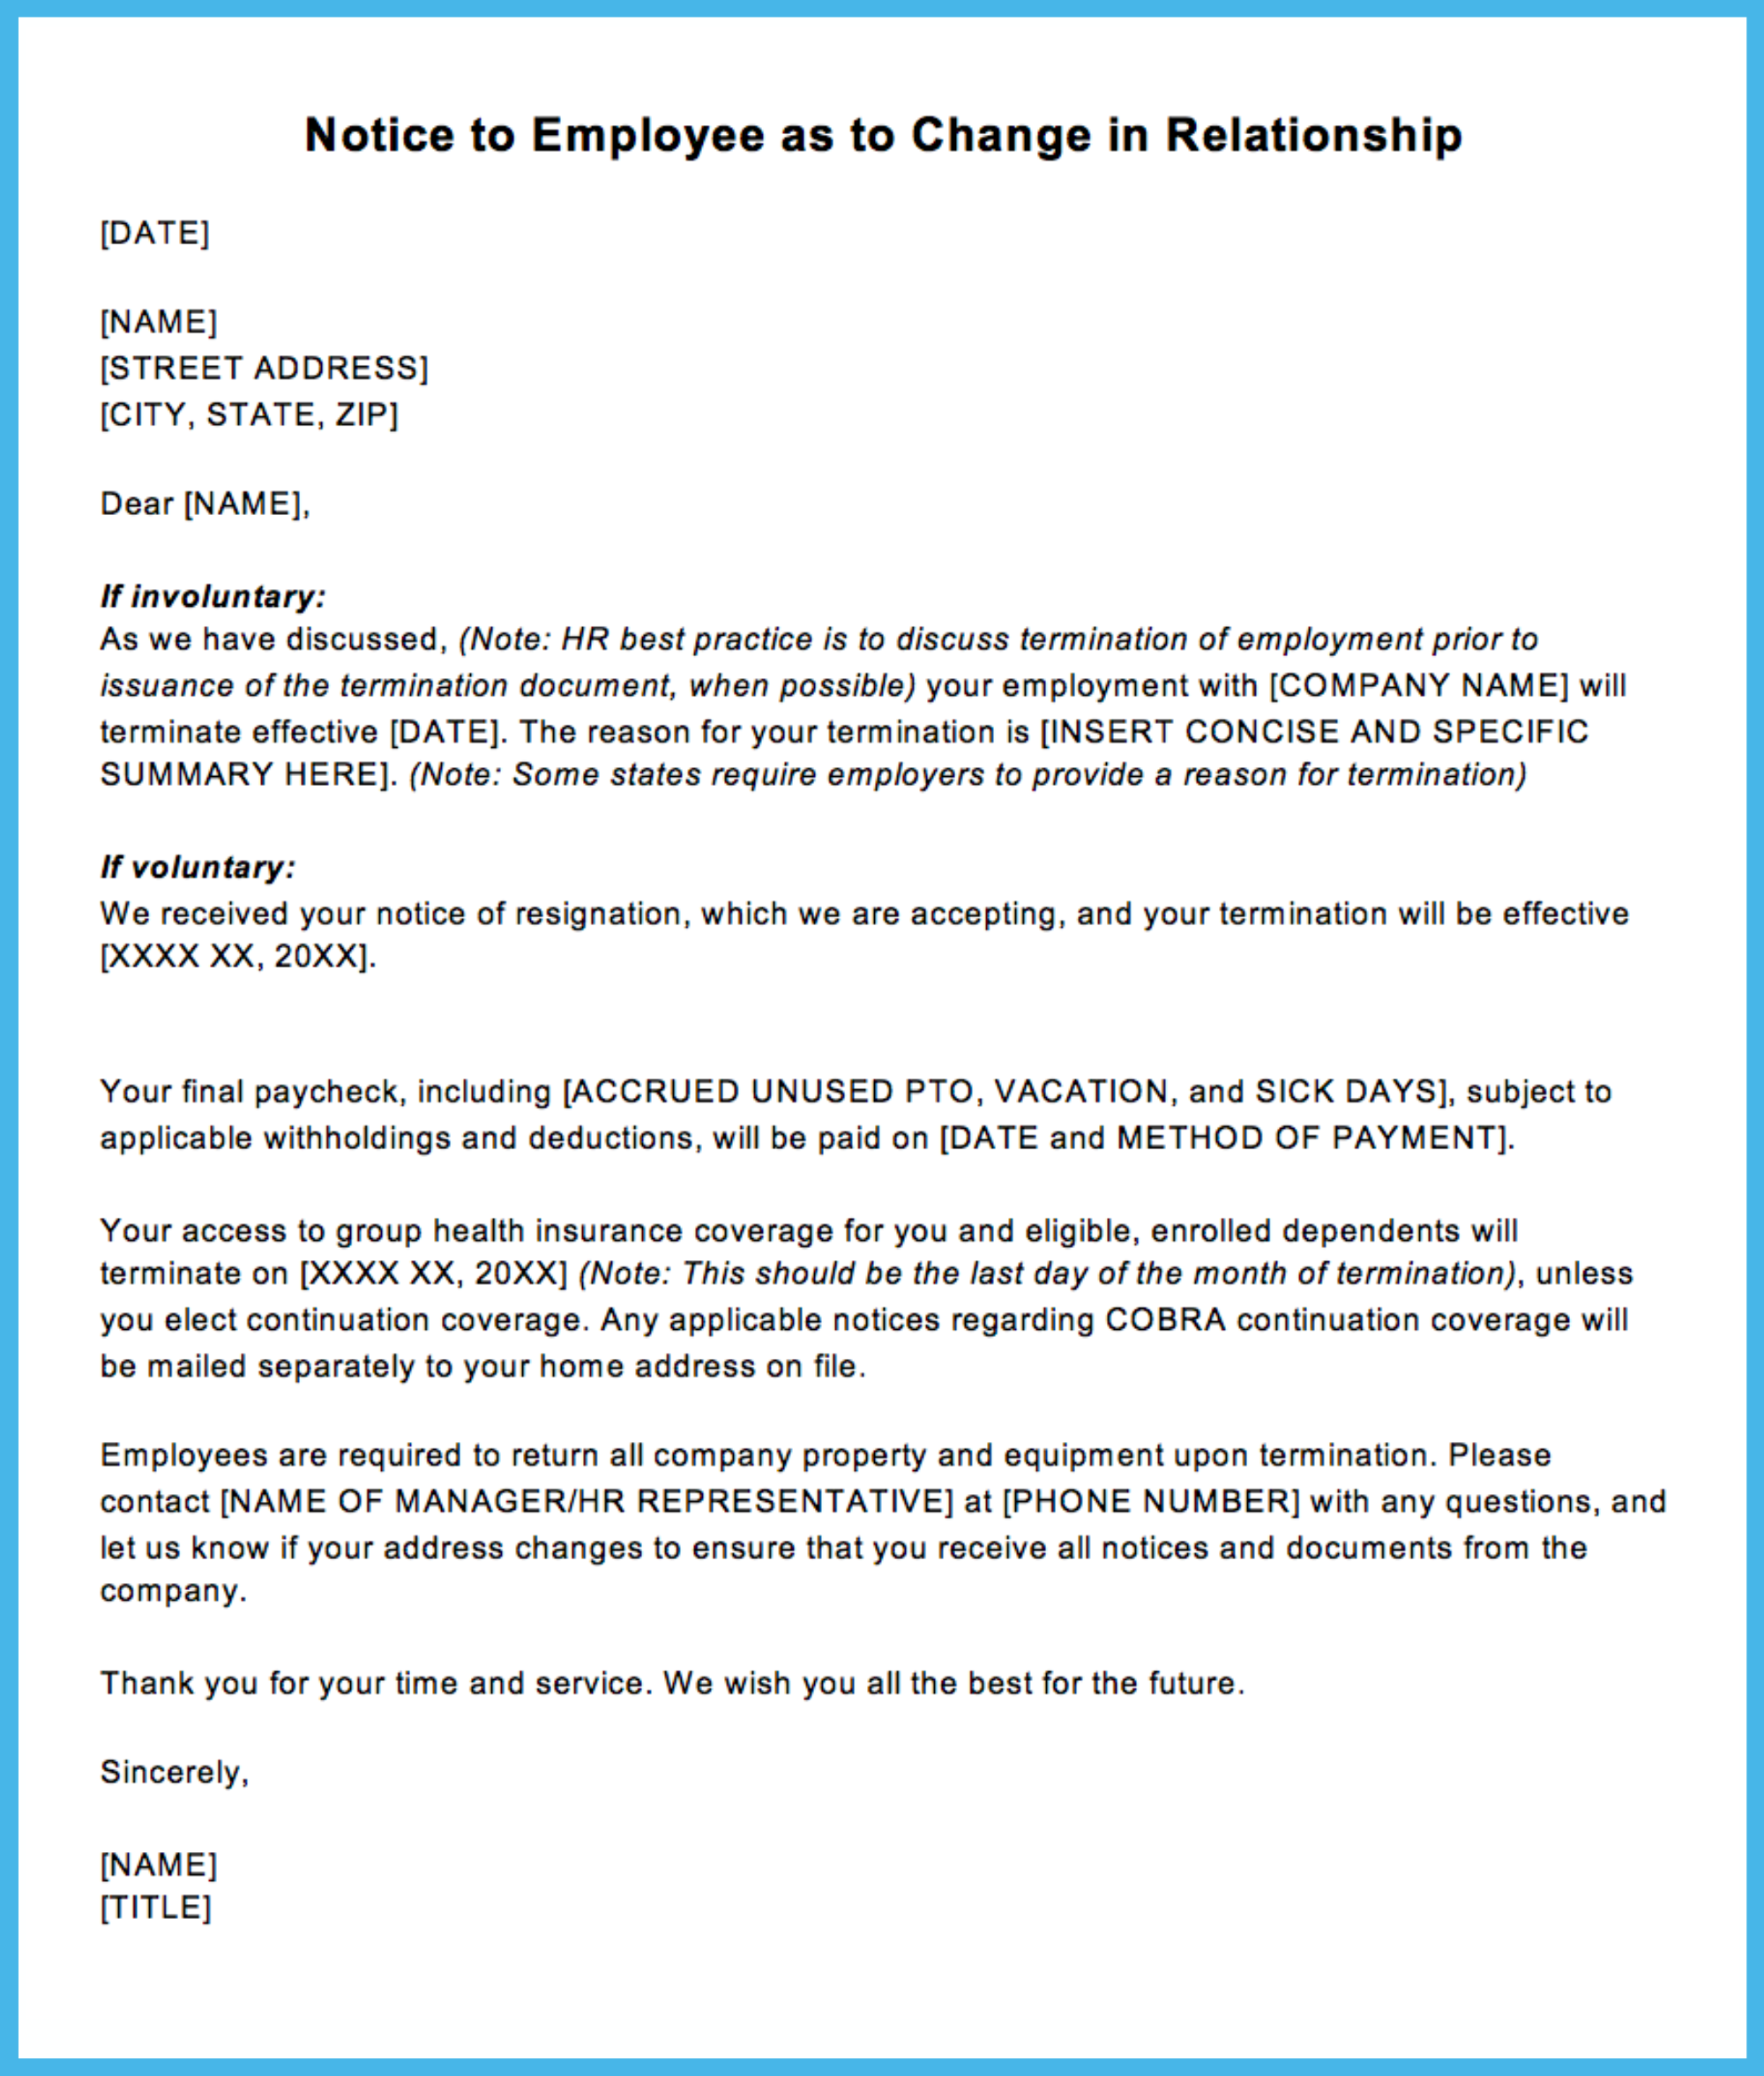 Sample termination letter for letting an employee go justworks please note that this sample termination letter assumes no severance is being paid if severance is being paid you should consider using a separate altavistaventures Gallery